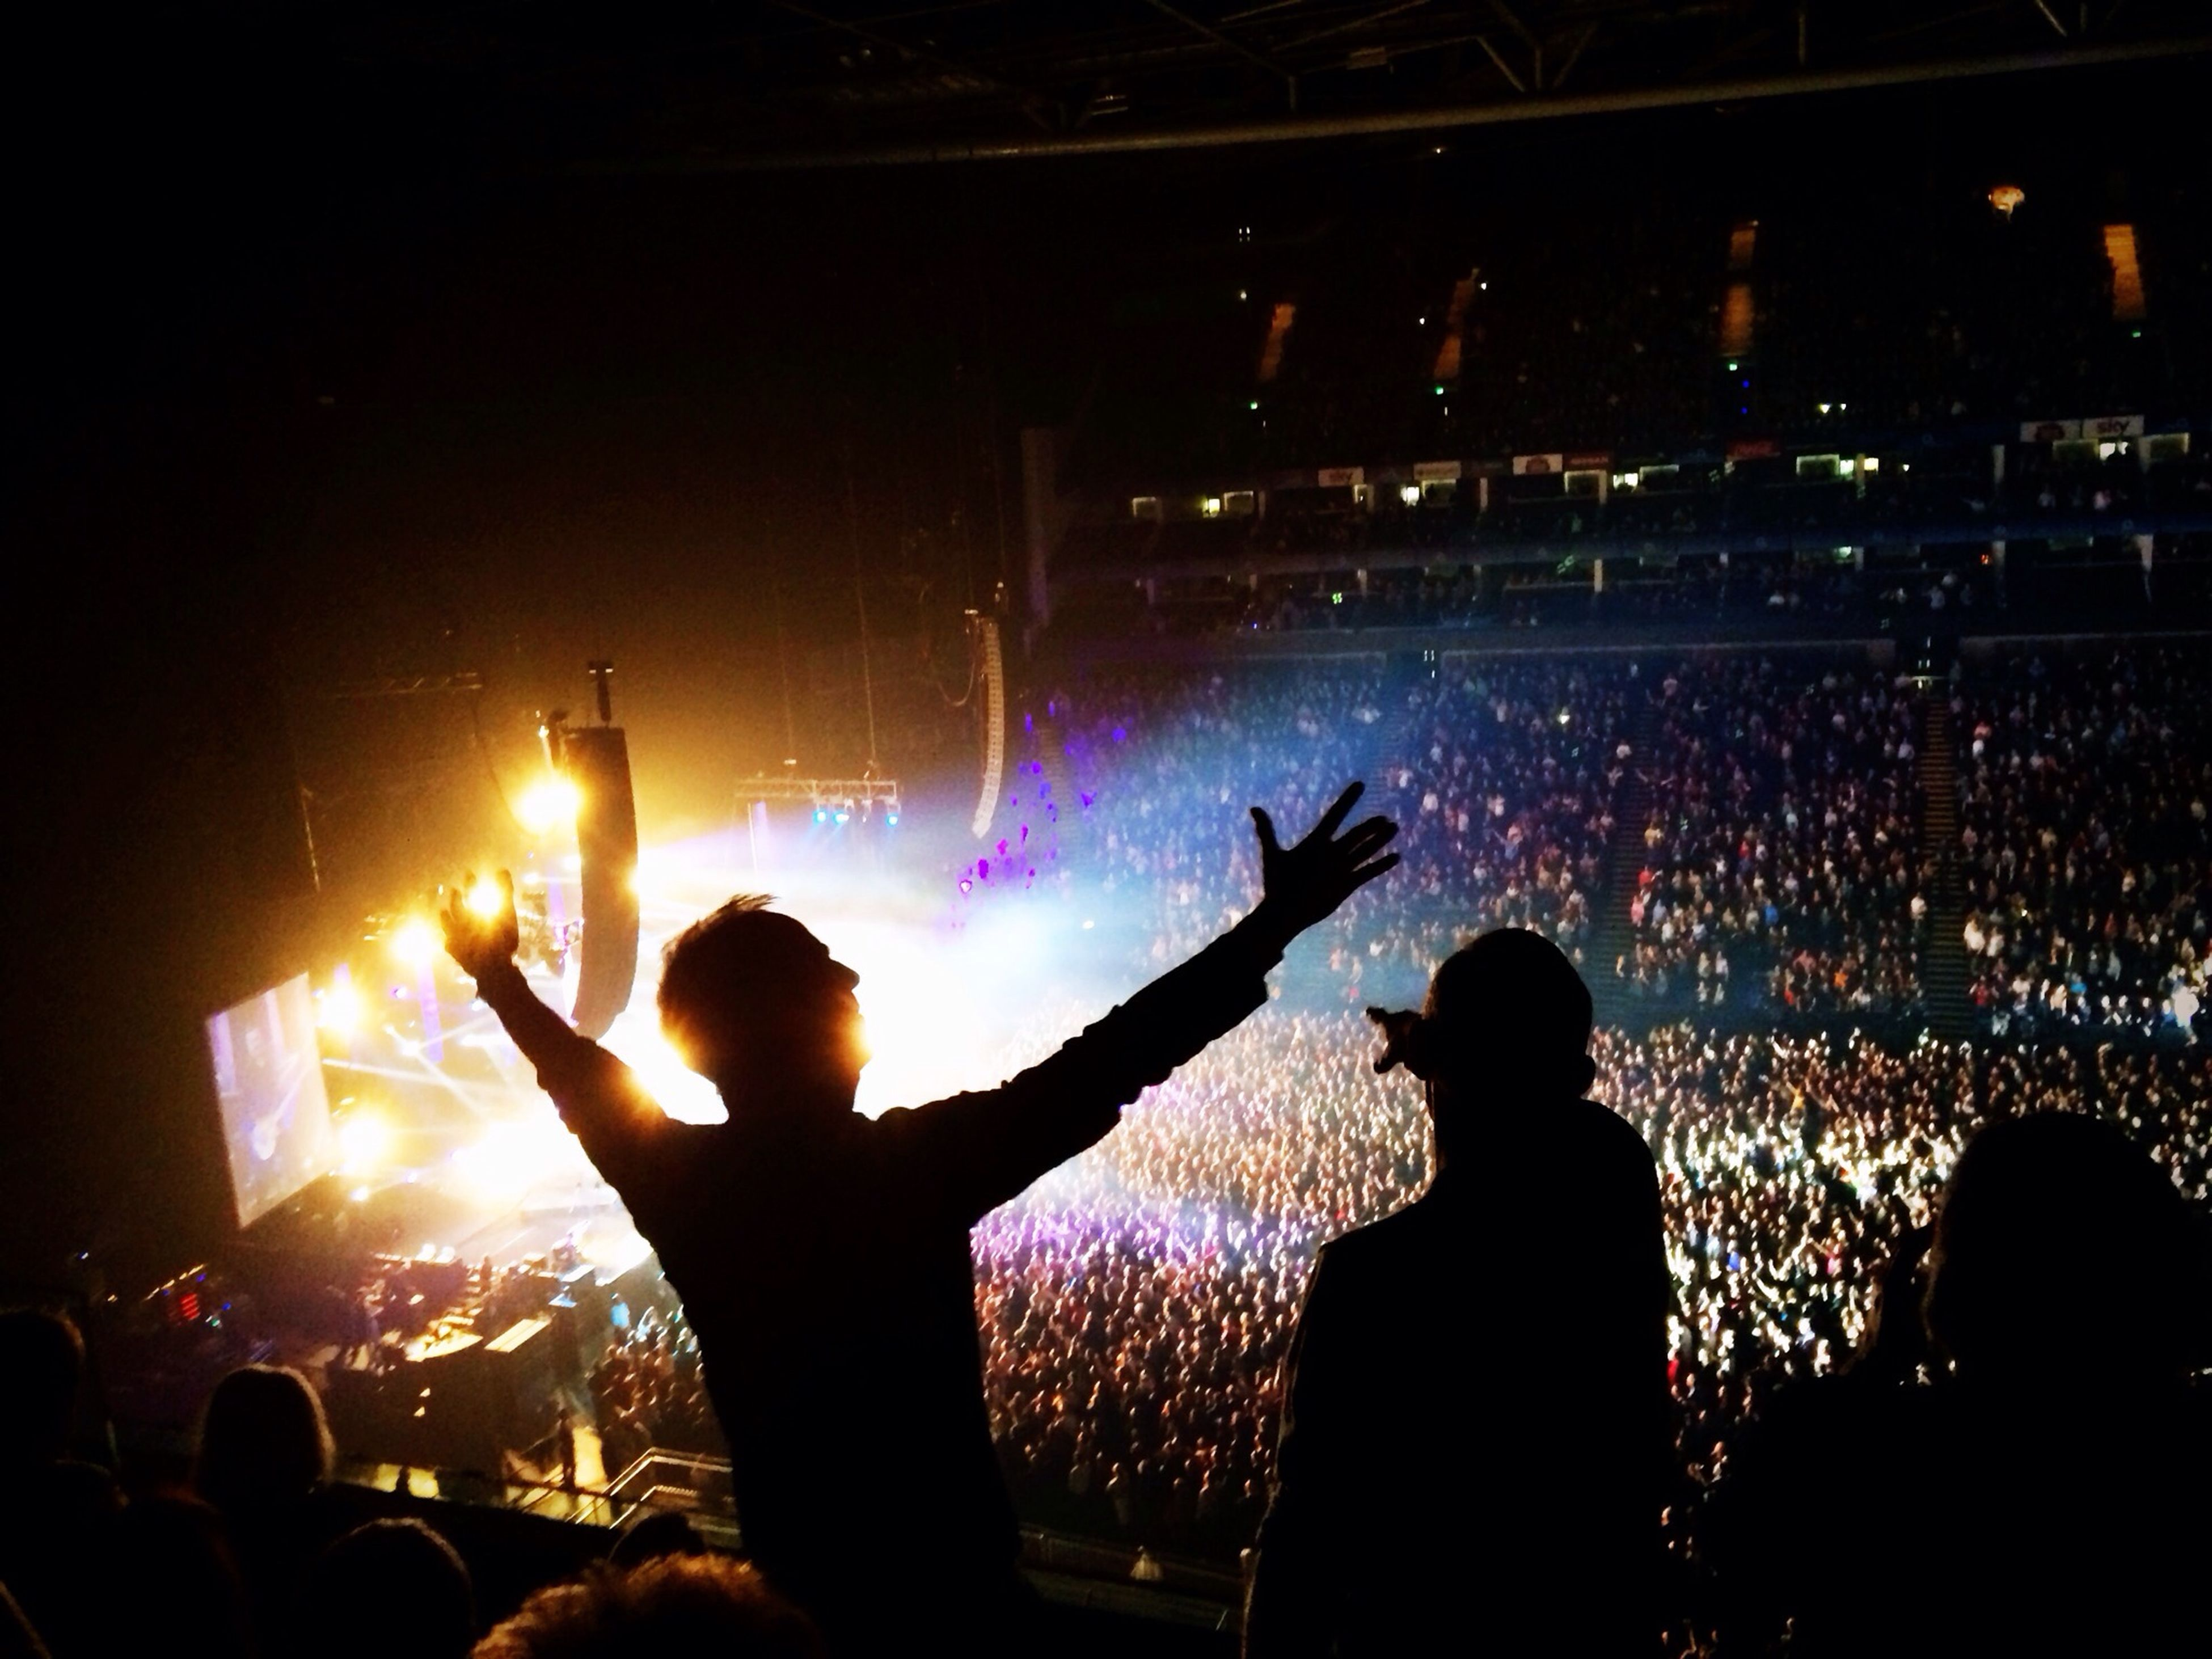 enjoyment, arts culture and entertainment, music, lifestyles, large group of people, event, illuminated, fun, nightlife, leisure activity, crowd, person, performance, men, concert, popular music concert, stage - performance space, excitement, music festival